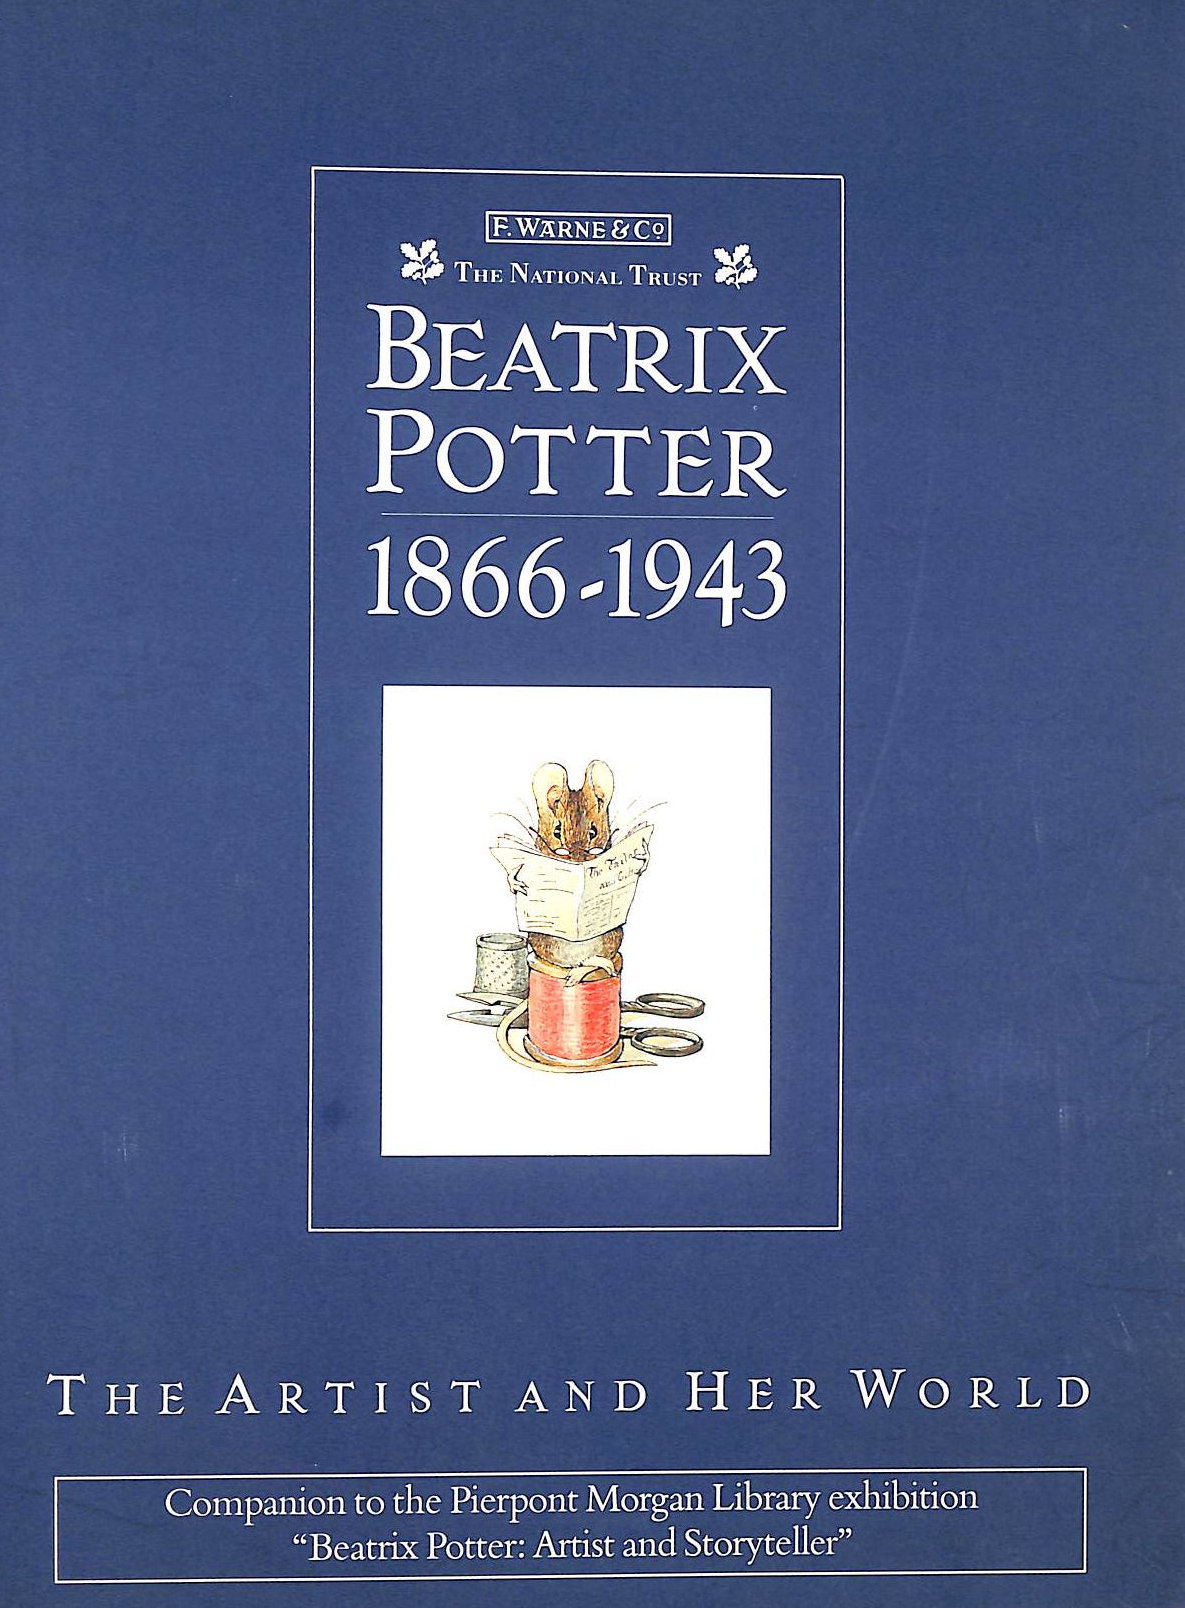 Image for Beatrix Potter 1866-1943: The Artist And Her World